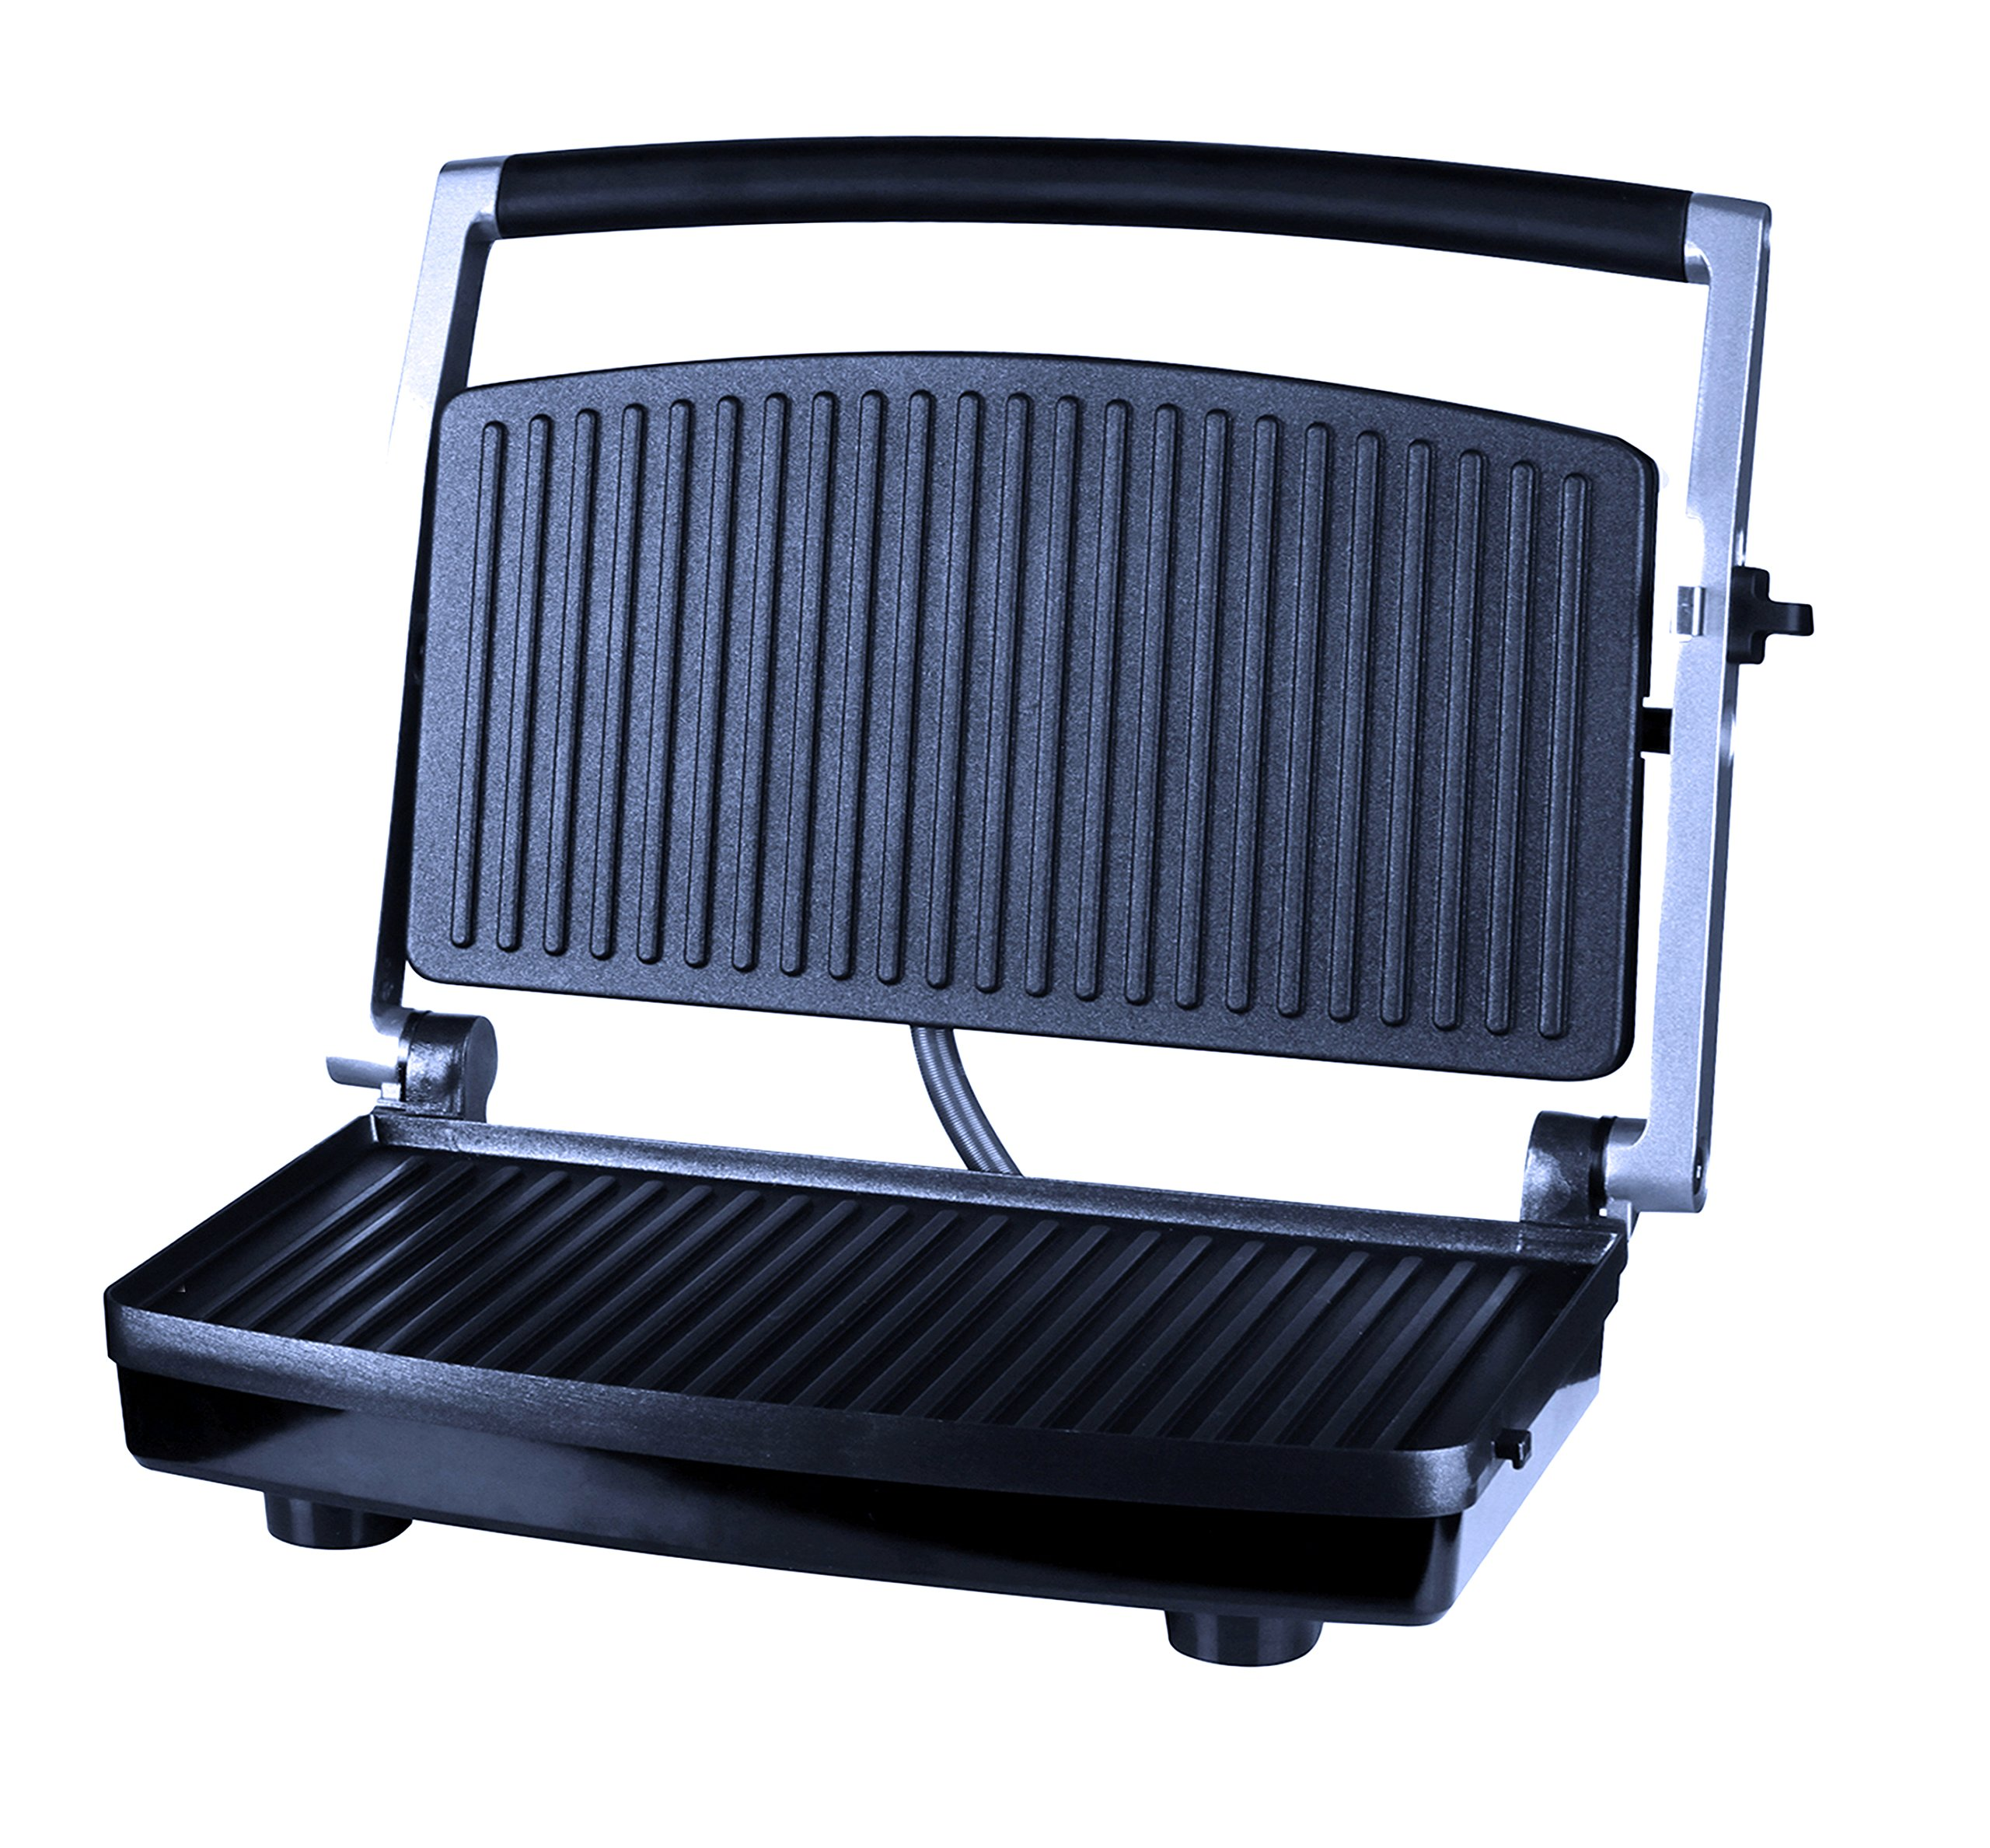 ZZ SM303 Burger Grill, Sandwich Maker, Panini Press, Steaks Griller or Grill, Silver by ZZ (Image #1)